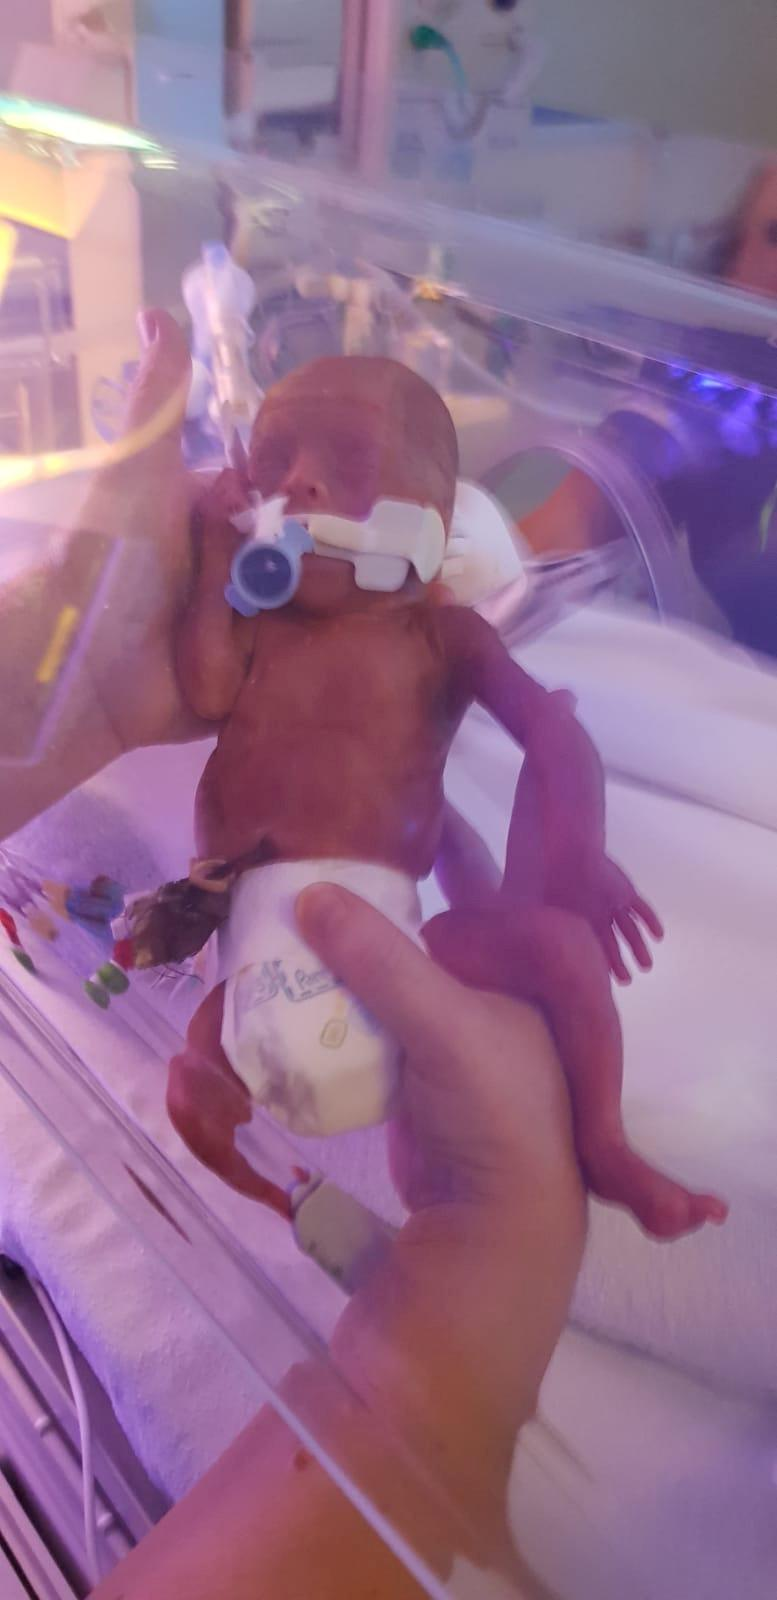 Haris was in the NICU when he was born [Photo: SWNS]